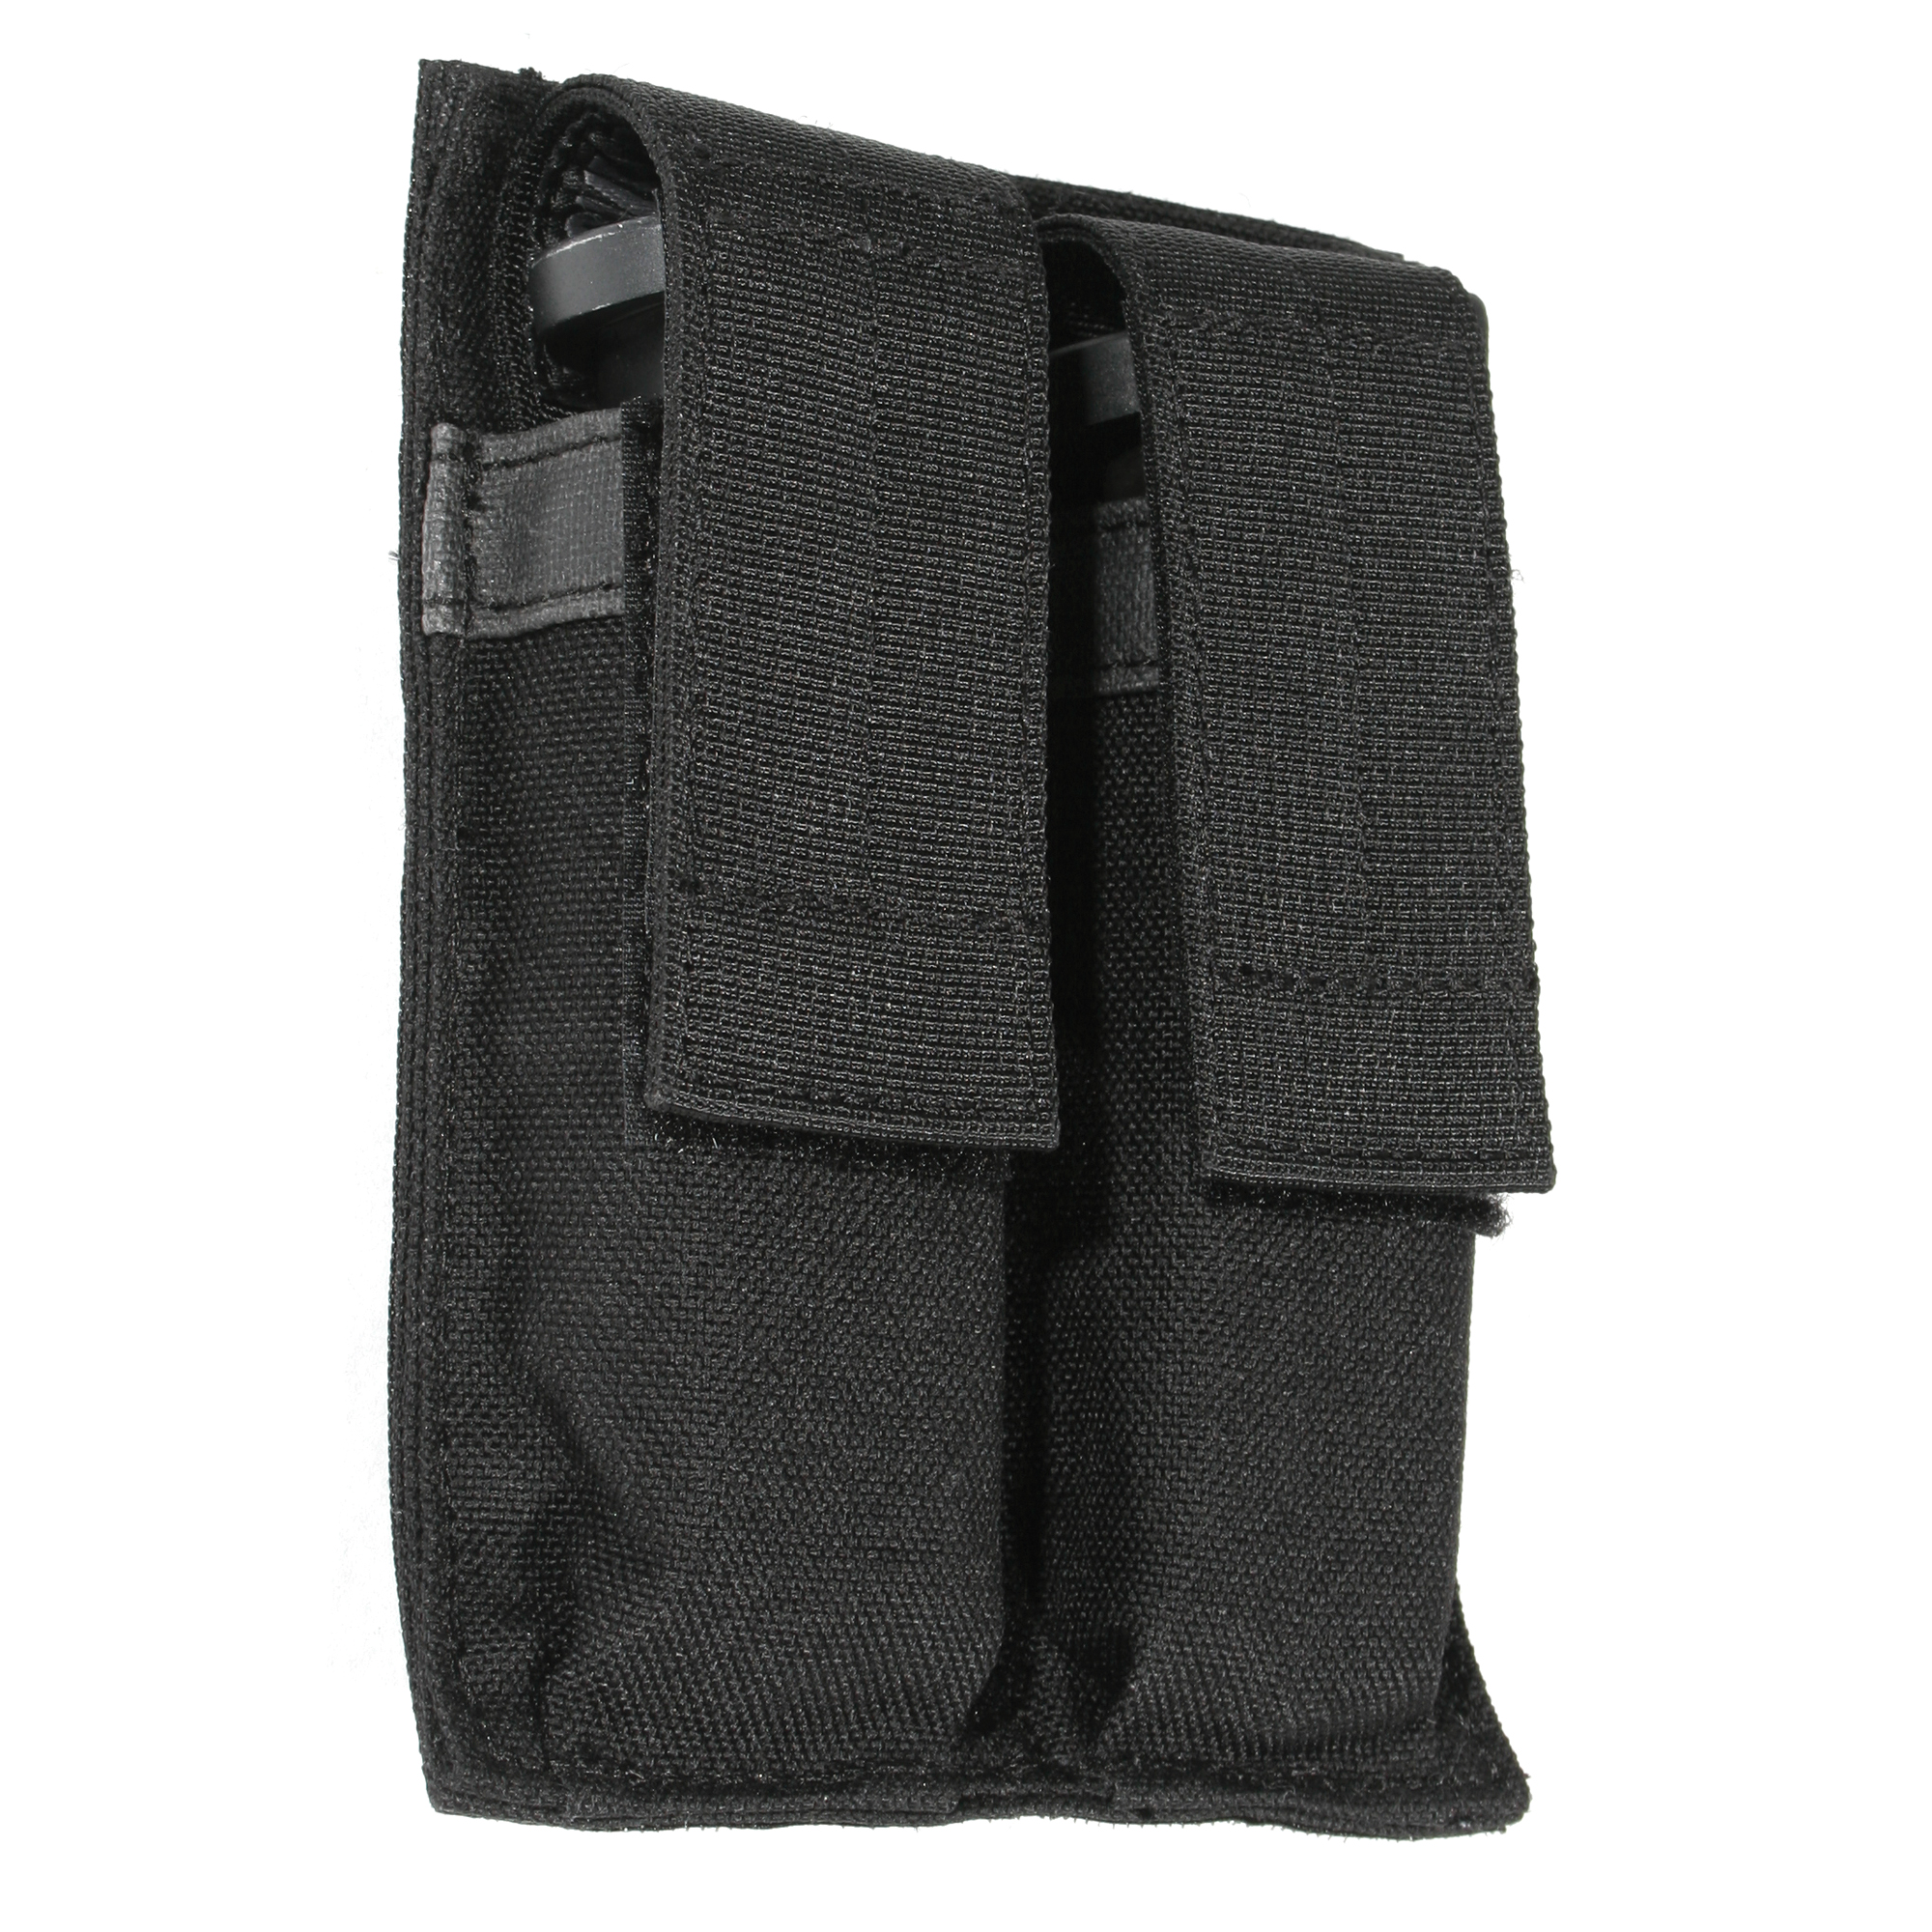 This Double Pistol Mag Pouch has a hook and loop attachment for quickly adding or removing the pouch.